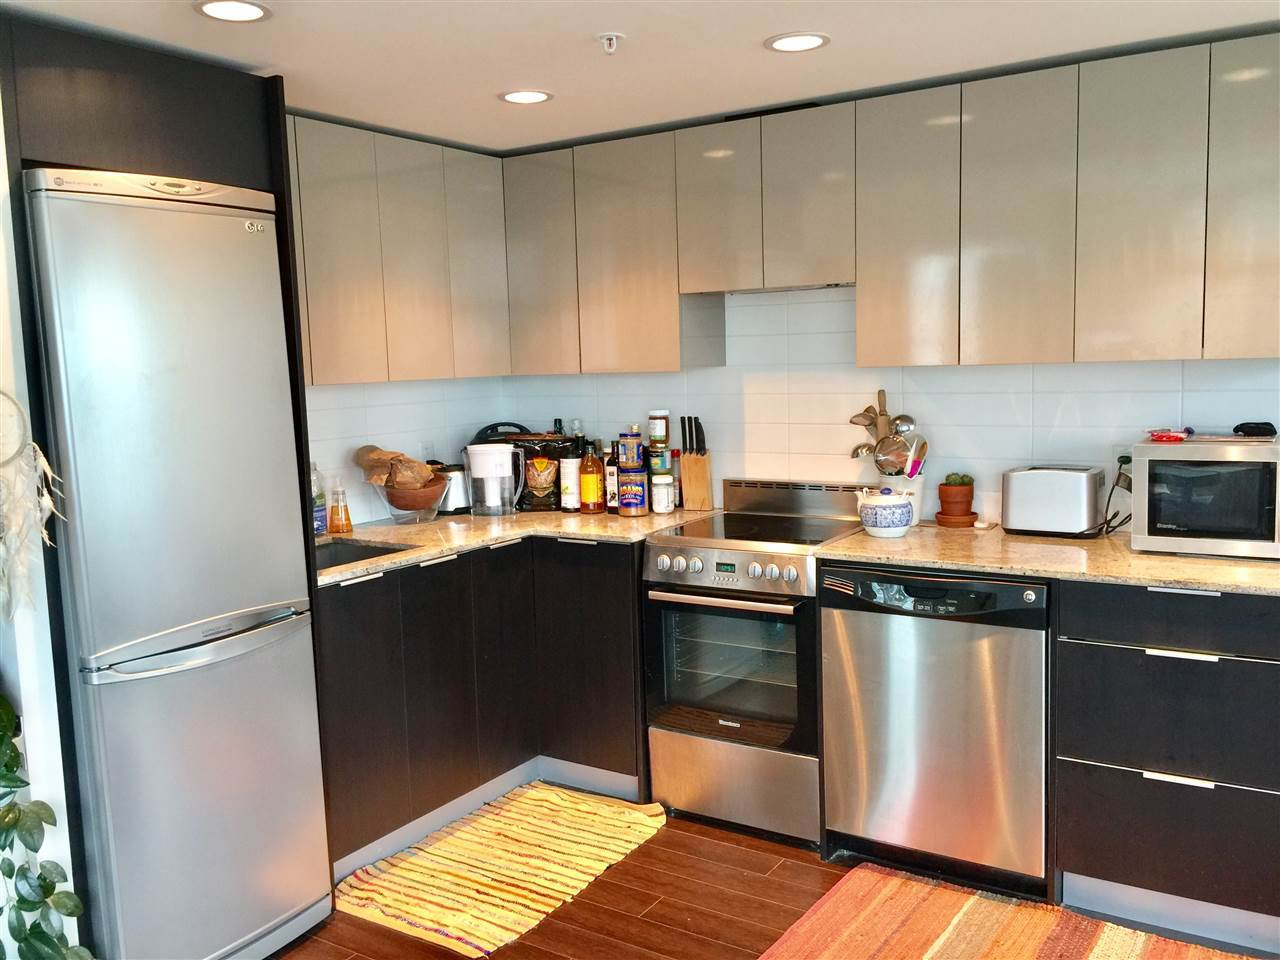 "Photo 8: Photos: 710 445 W 2ND Avenue in Vancouver: False Creek Condo for sale in ""Maynards Block"" (Vancouver West)  : MLS®# R2144737"